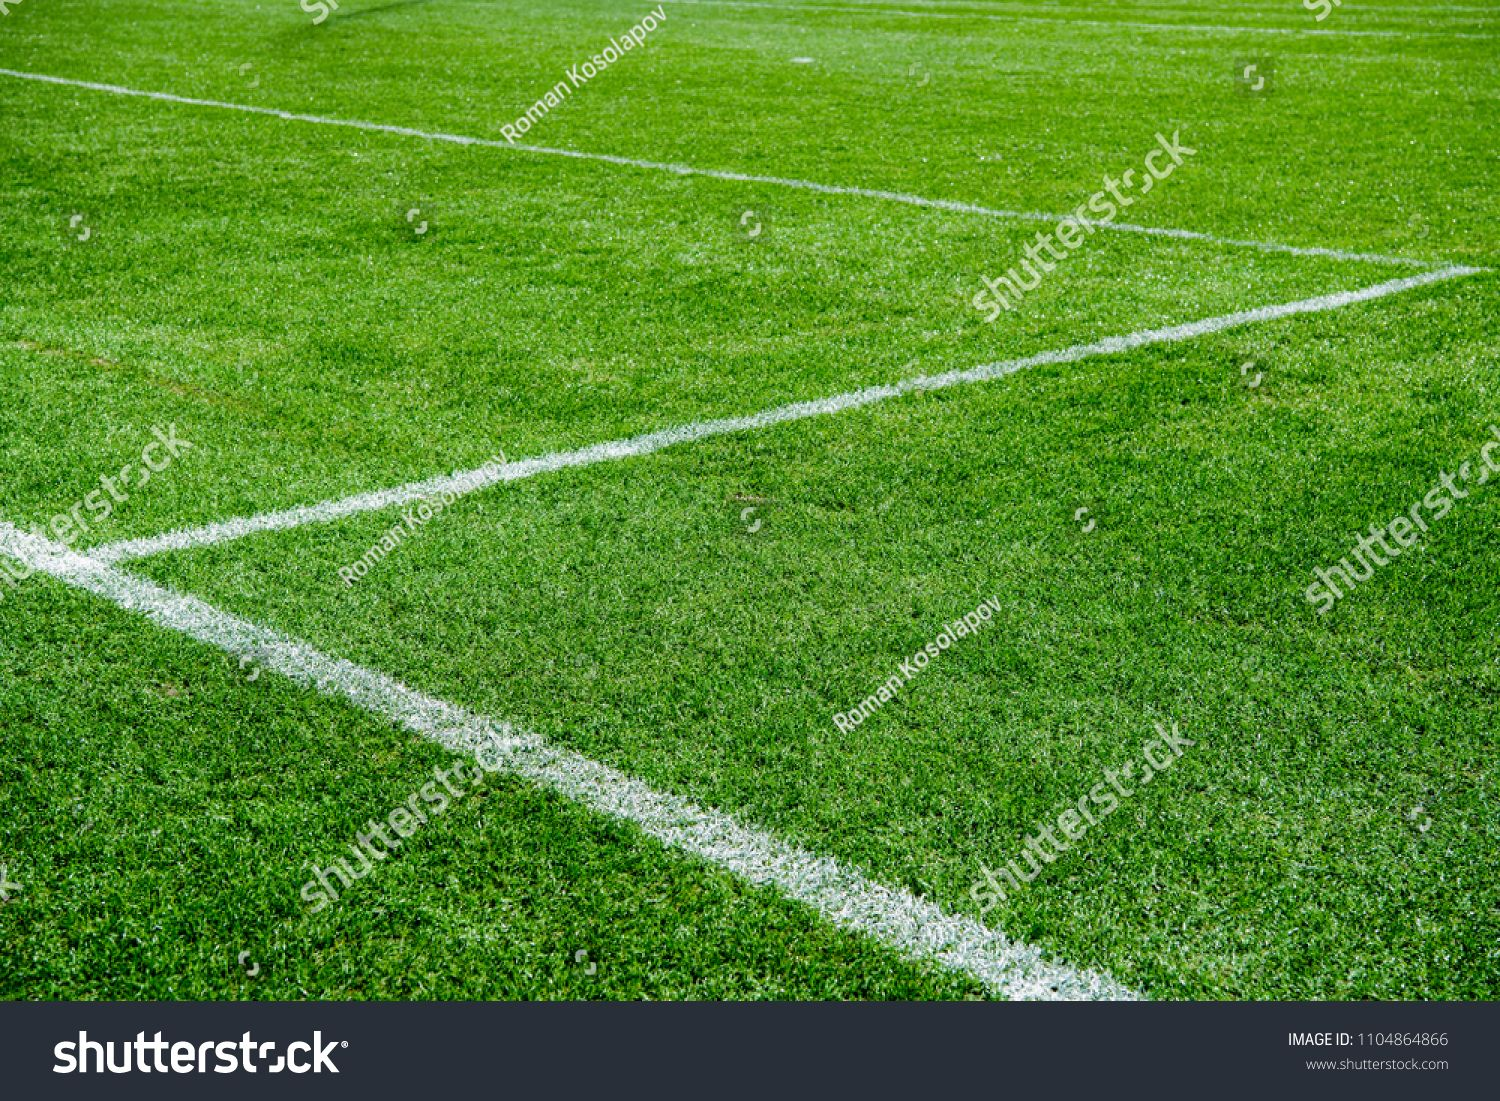 White Lines On Green Grass Of A Soccer Field Selective Focus Ad Ad Green Grass White Lines With Images Icon Design Soccer Field Creative Icon